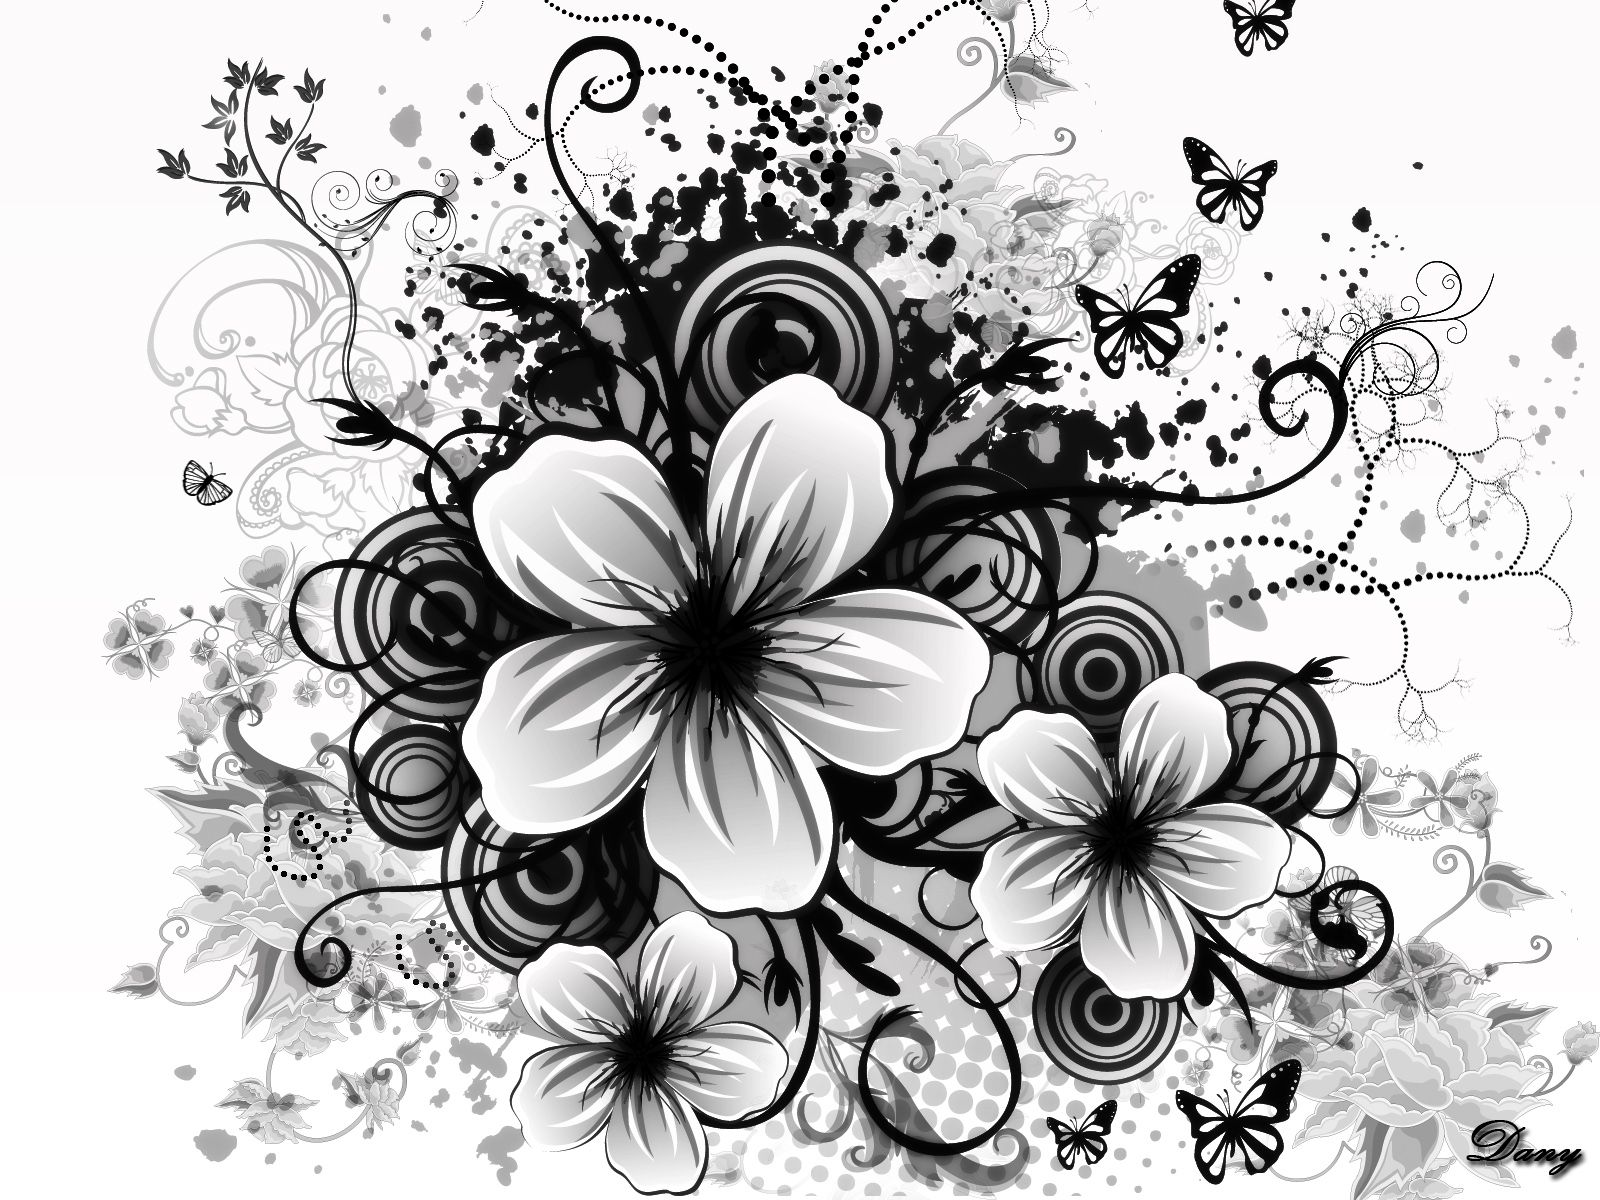 Flower Drawings In Black And White 12 15 03 36 13 23091